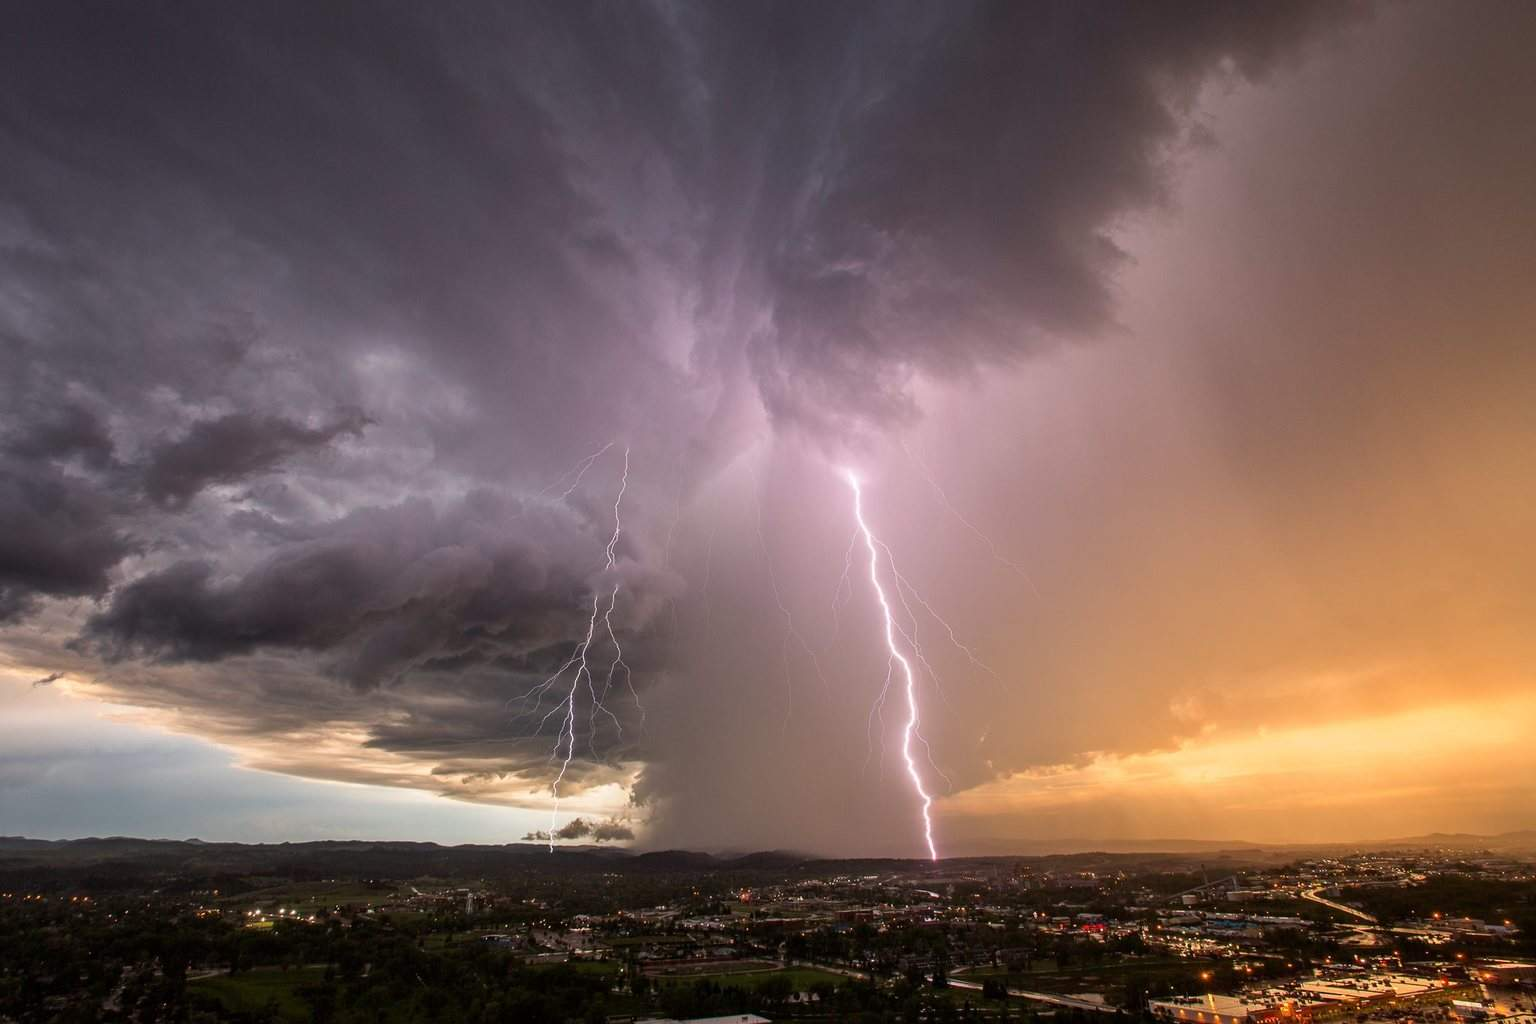 Rapid City, SD...June 1st. What an incredible supercell early on, but as it was dying out the lightning display was amazing.